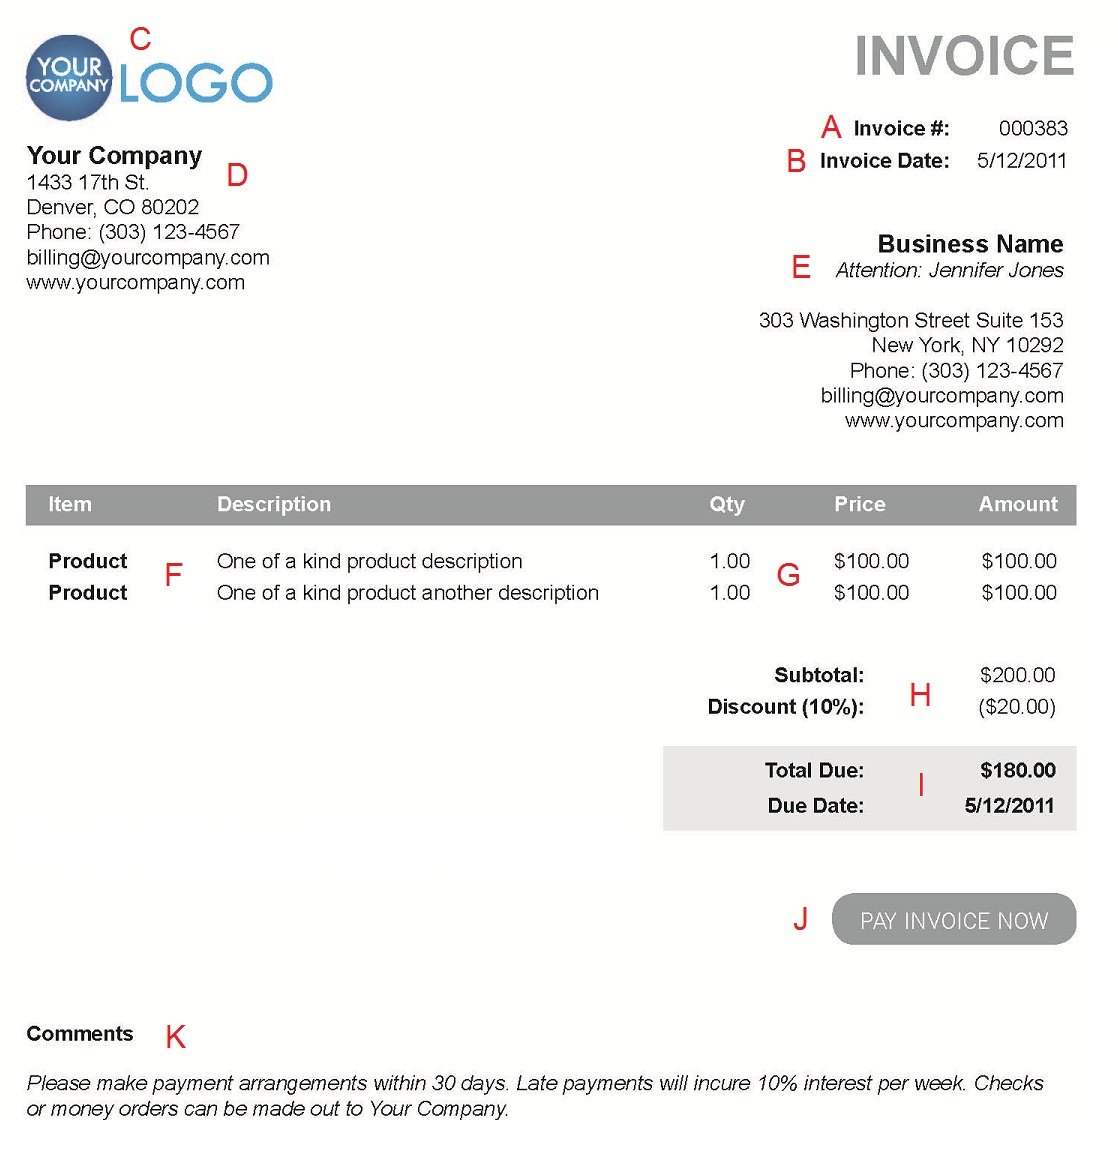 Aaaaeroincus  Gorgeous The  Different Sections Of An Electronic Payment Invoice With Magnificent A  With Lovely Xero Custom Invoice Also How To Prepare A Invoice In Addition What Is A Invoice Used For And Invoice Payment Reminder As Well As Design Your Own Invoice Additionally Recipient Created Tax Invoice Agreement From Paysimplecom With Aaaaeroincus  Magnificent The  Different Sections Of An Electronic Payment Invoice With Lovely A  And Gorgeous Xero Custom Invoice Also How To Prepare A Invoice In Addition What Is A Invoice Used For From Paysimplecom